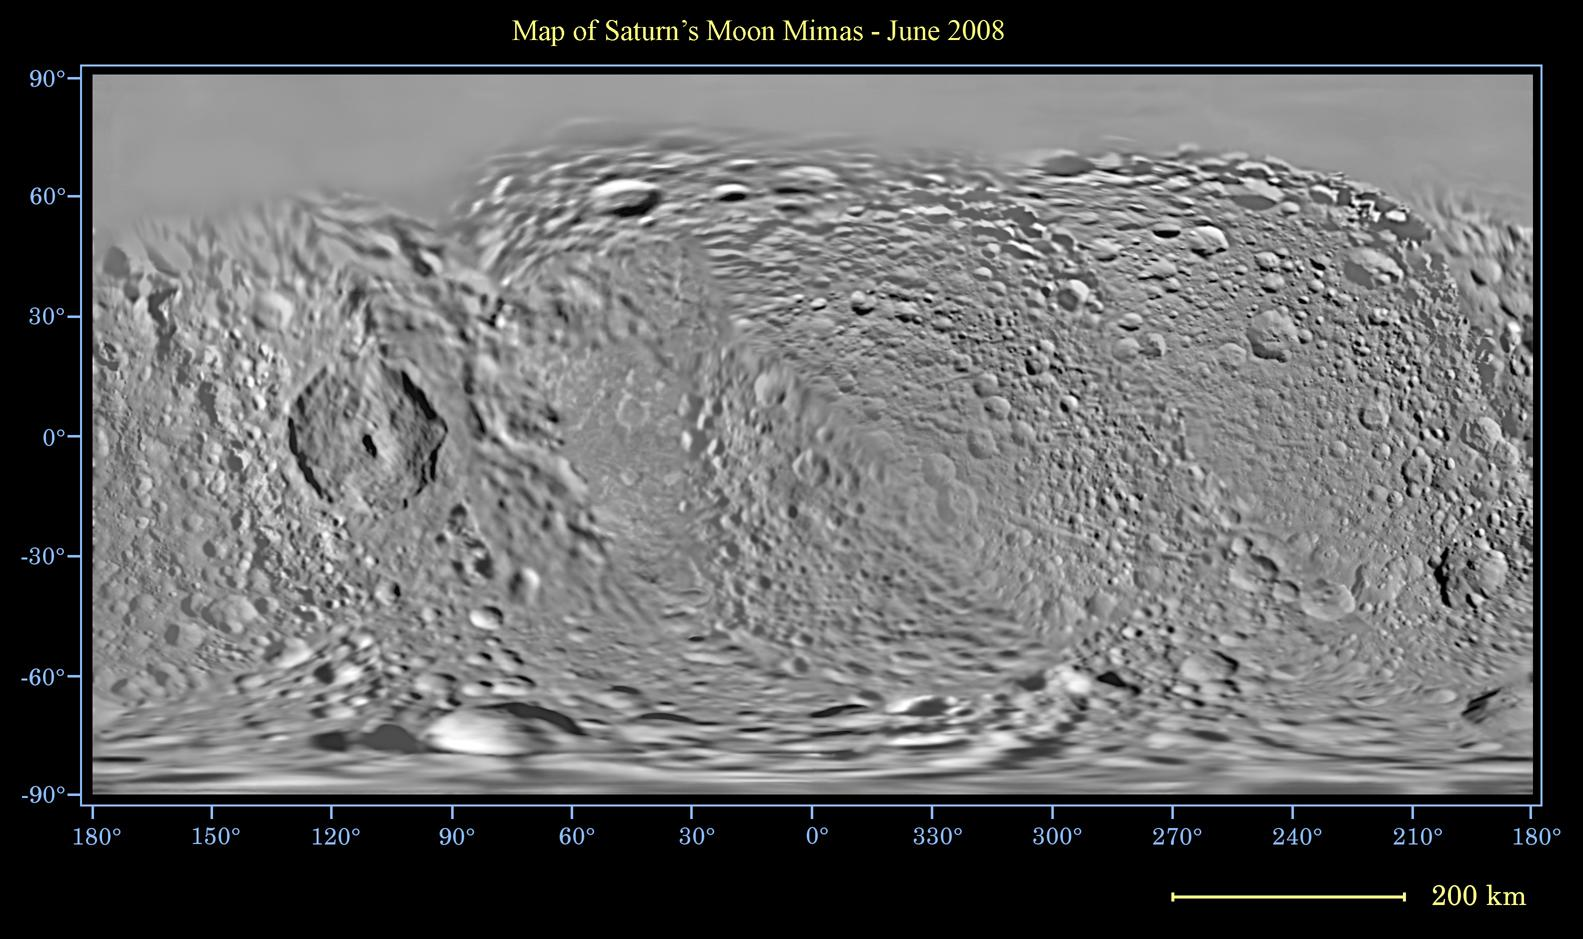 Global map of Saturn's moon Mimas